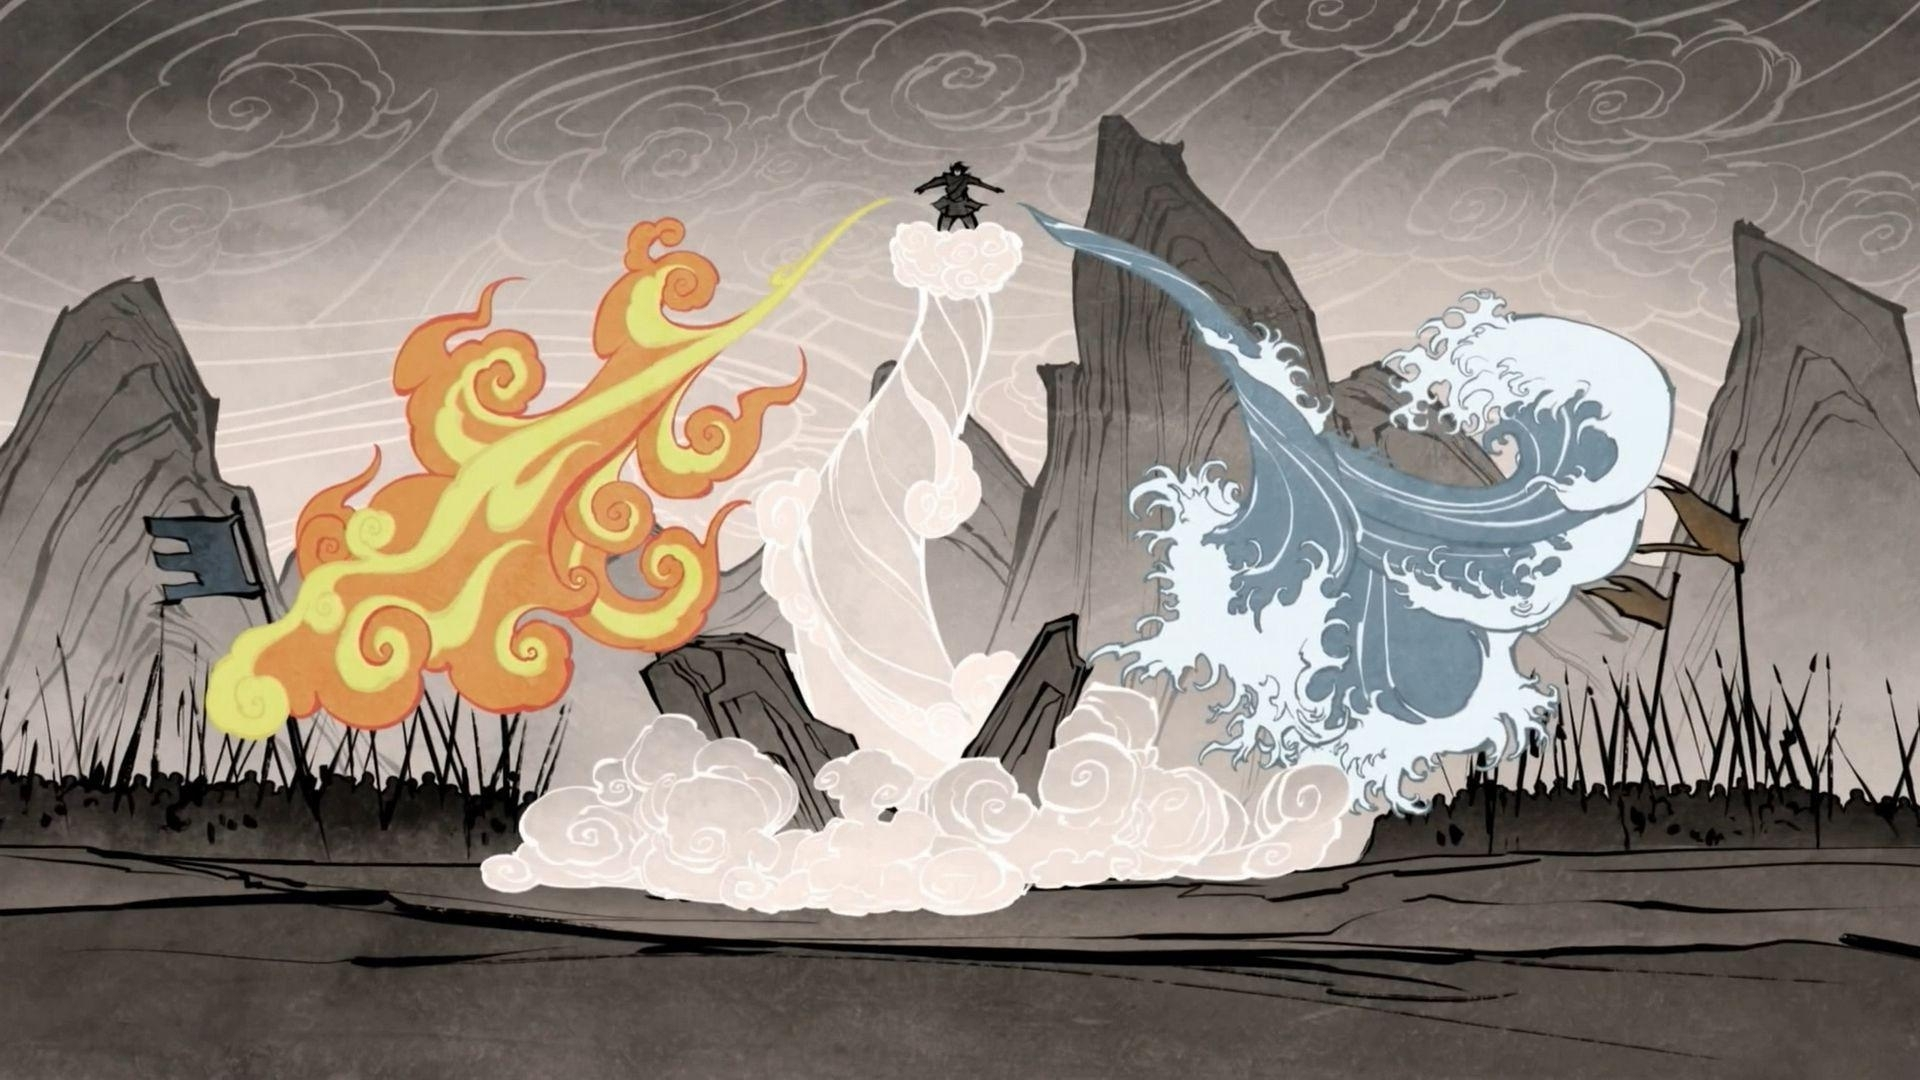 free 1920x1080 cartoon cool avatar the last airbender wallpapers